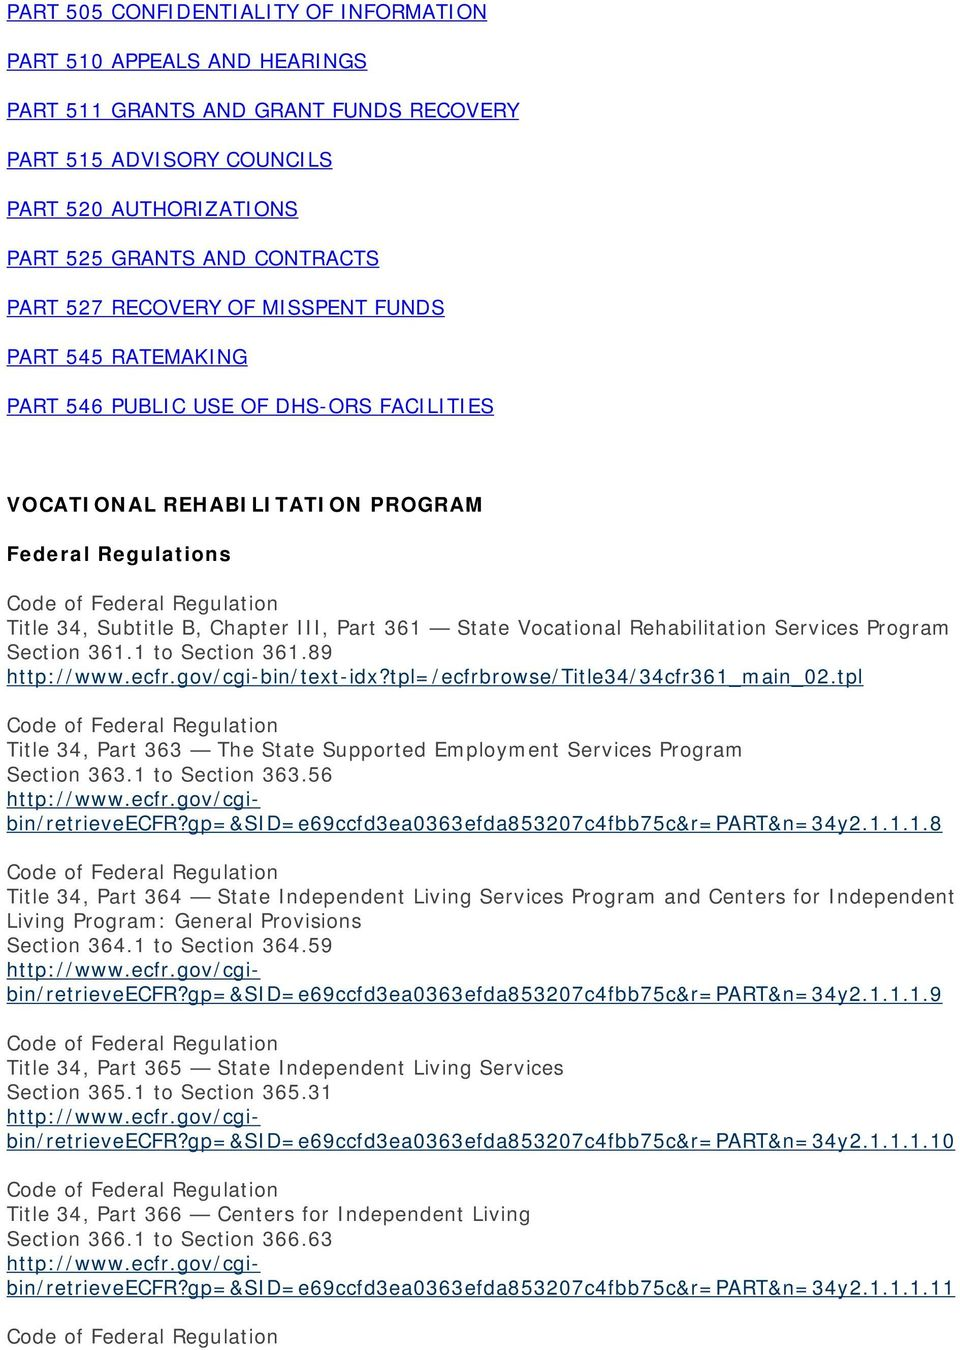 Vocational Rehabilitation Services Program Section 361.1 to Section 361.89 http://www.ecfr.gov/cgi-bin/text-idx?tpl=/ecfrbrowse/title34/34cfr361_main_02.